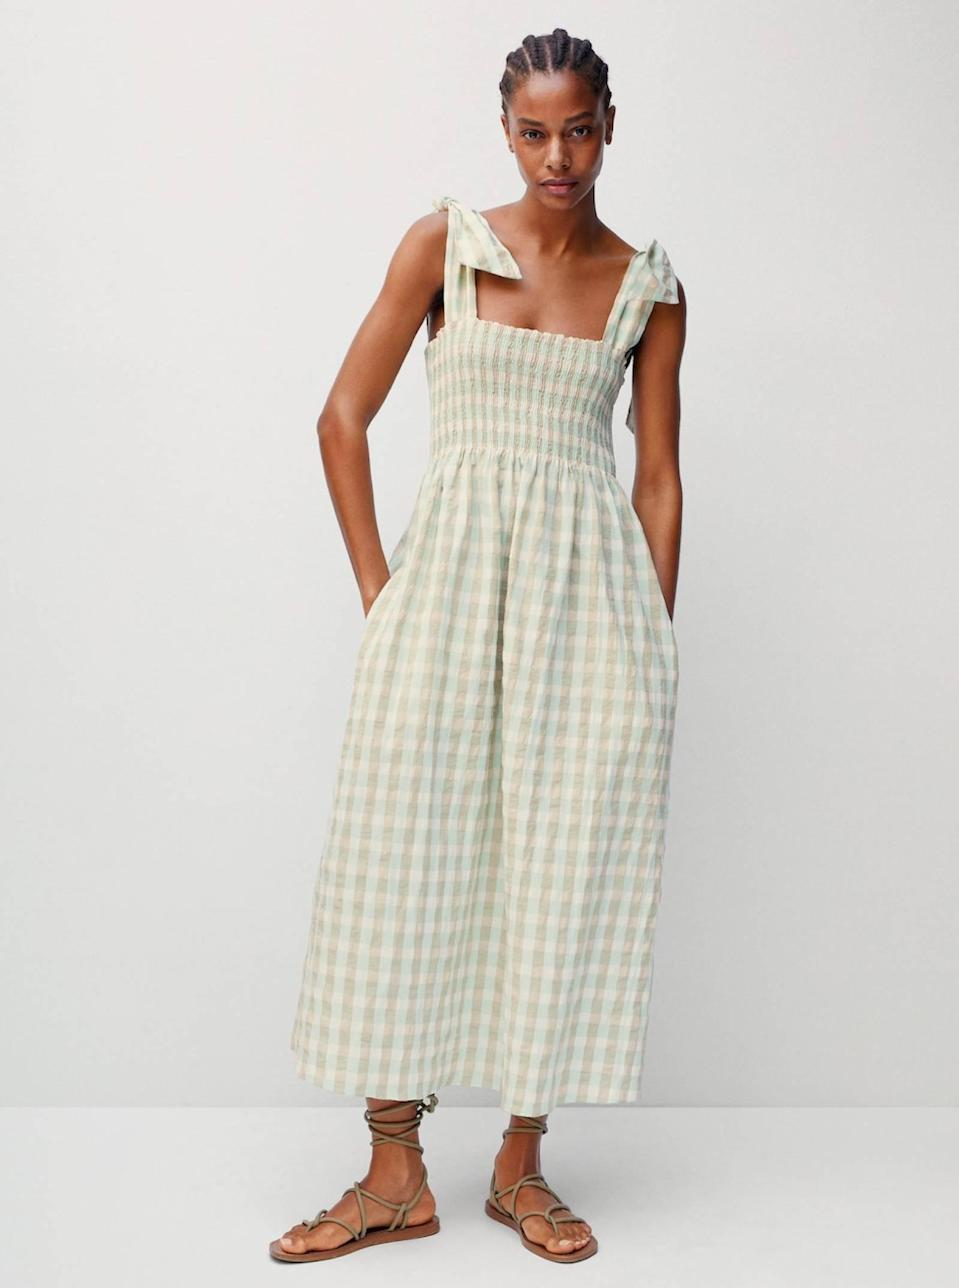 """Speaking of picnics, don't be afraid to go matchy-matchy with the blanket. Gingham and checkerboard are here to stay (at least for the season), and this Mango price is right. $80, Mango. <a href=""""https://shop.mango.com/us/women/dresses-and-jumpsuits-midi/vichy-check-dress_87007152.html"""" rel=""""nofollow noopener"""" target=""""_blank"""" data-ylk=""""slk:Get it now!"""" class=""""link rapid-noclick-resp"""">Get it now!</a>"""